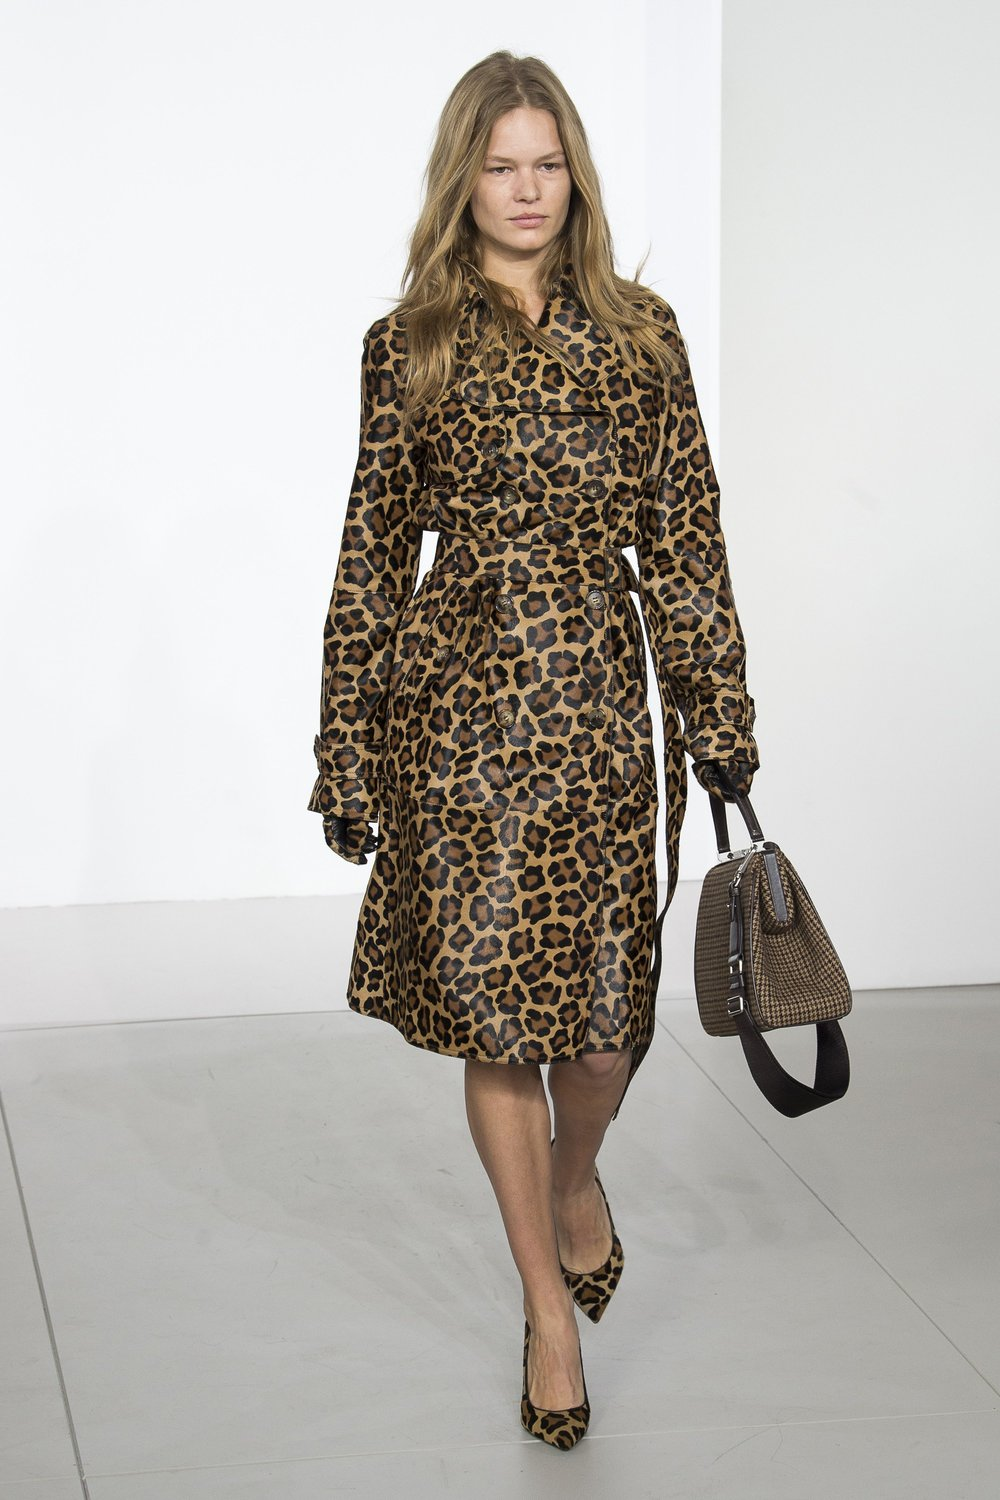 A look from  Michael Kors  Fall 2018 Collection